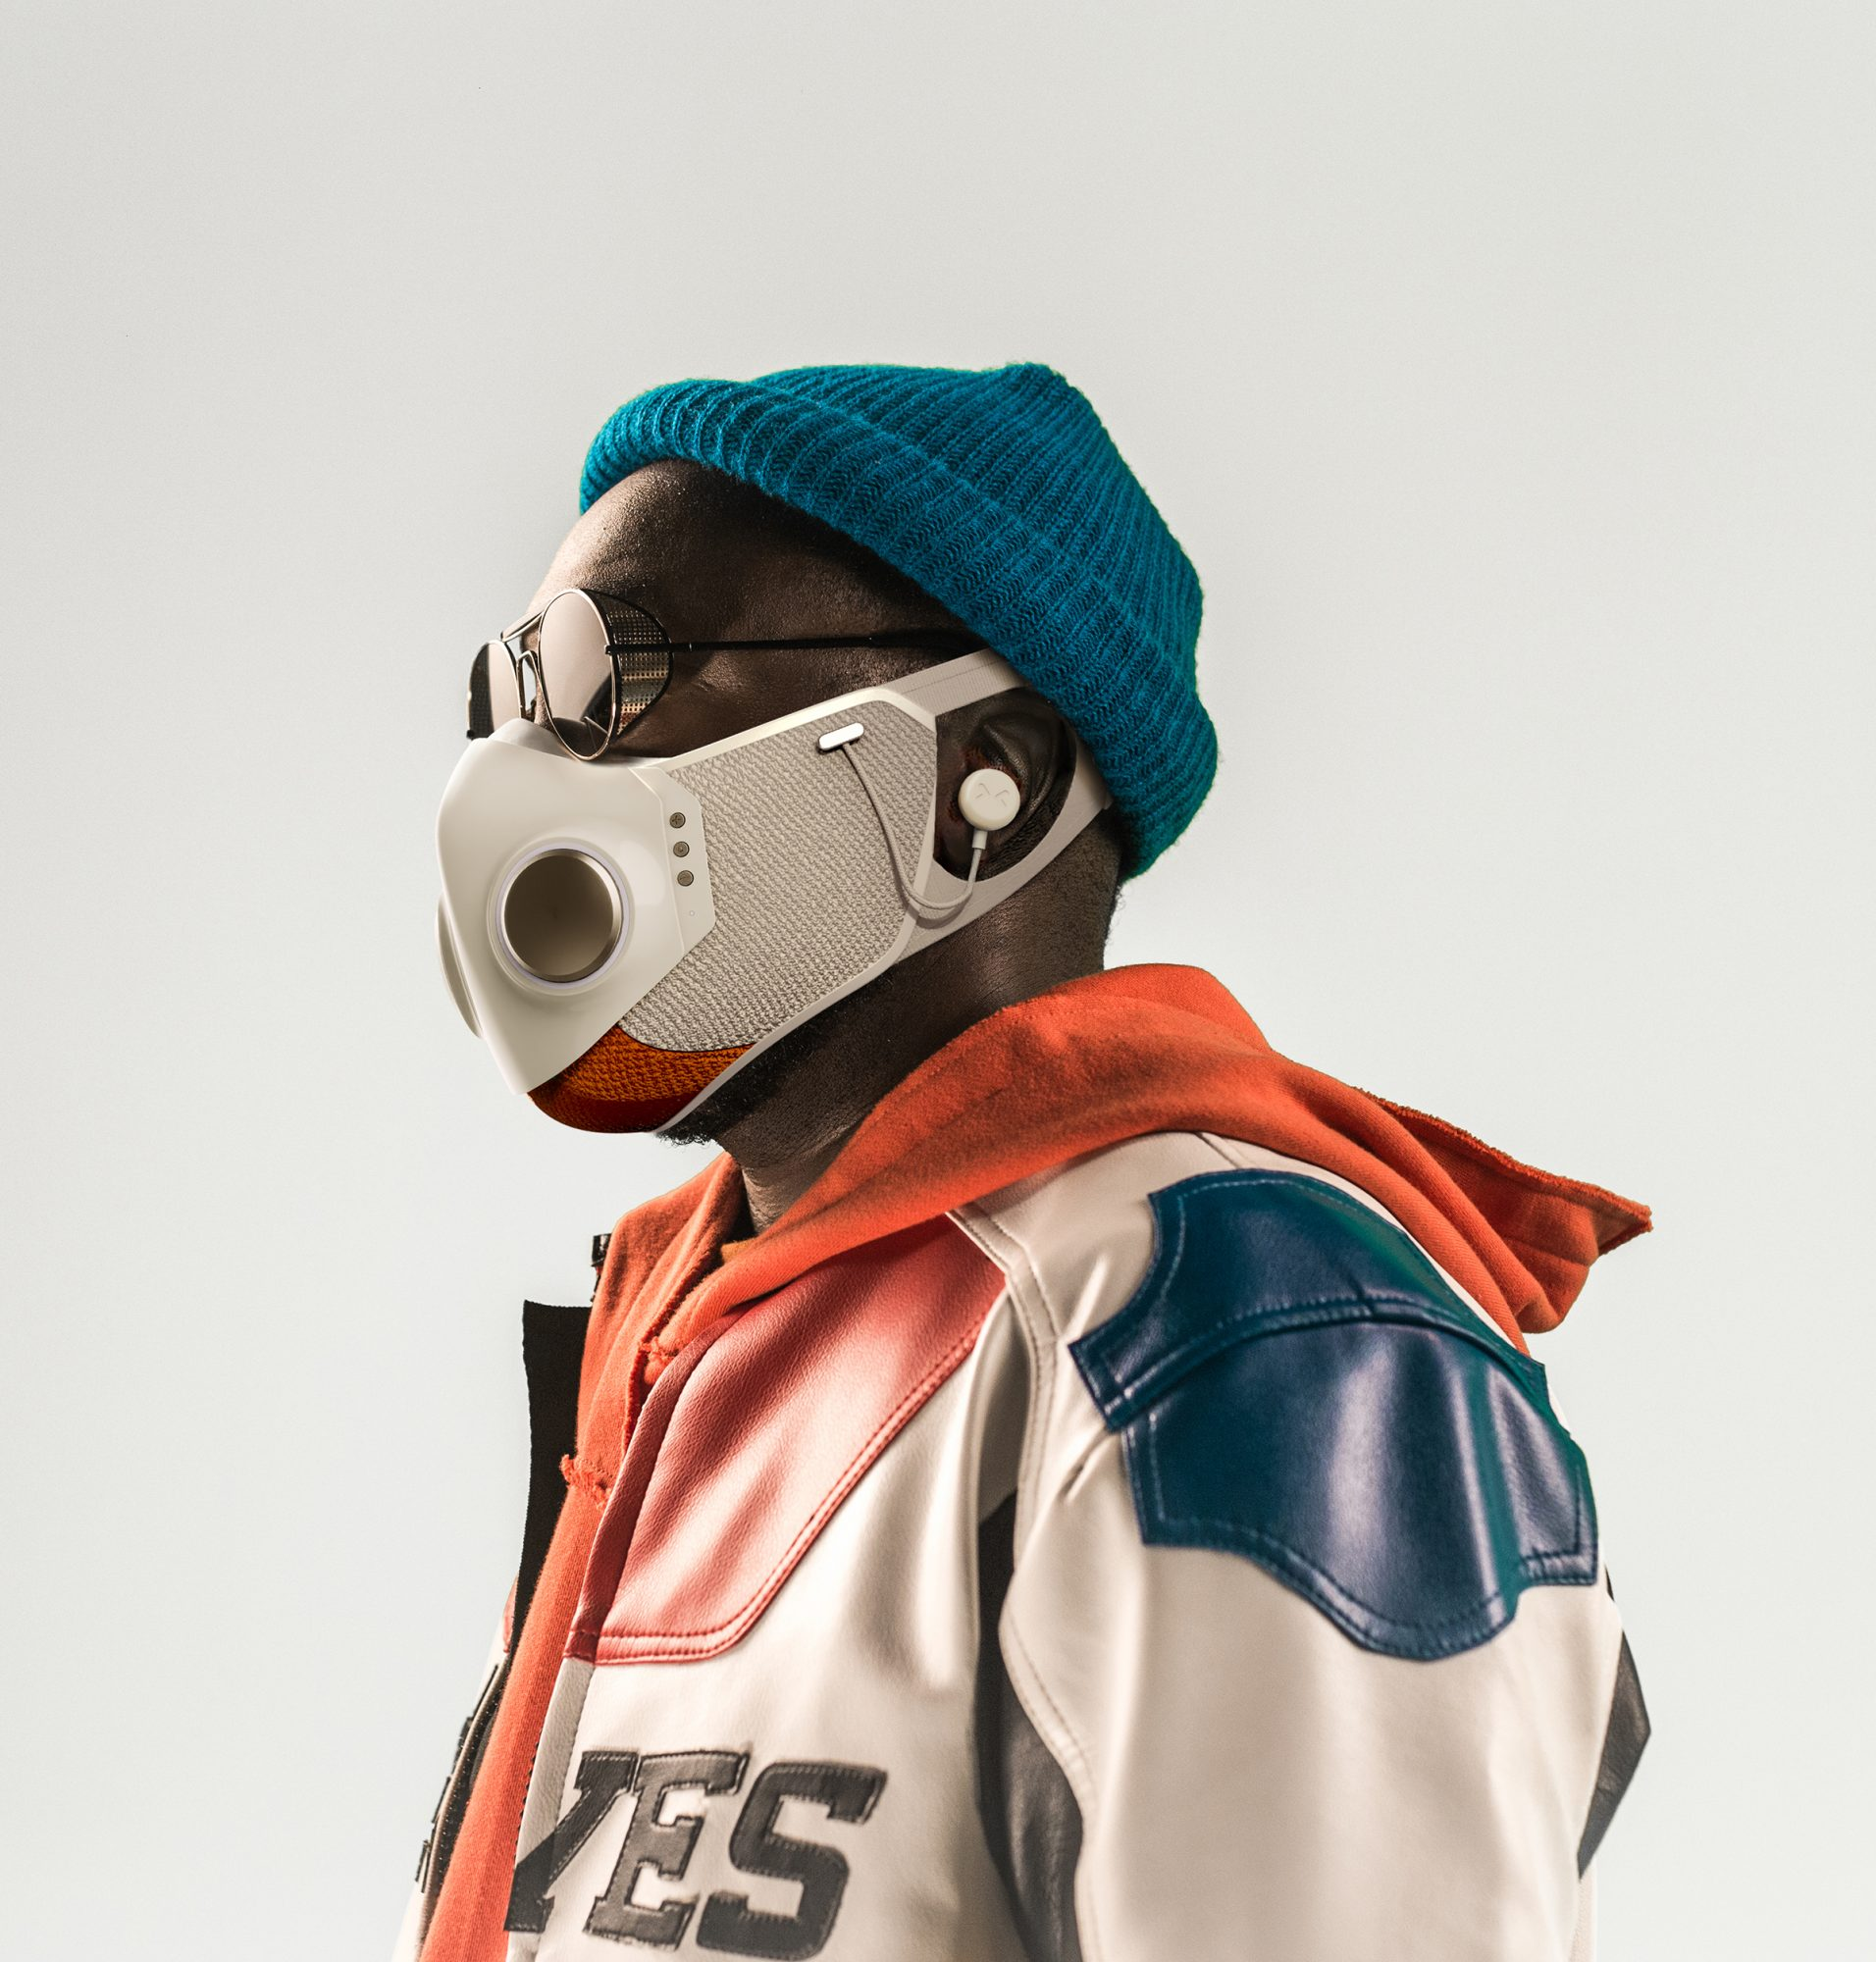 will.i.am debuts innovative face technology concept, XUPERMASK, in partnership with Honeywell